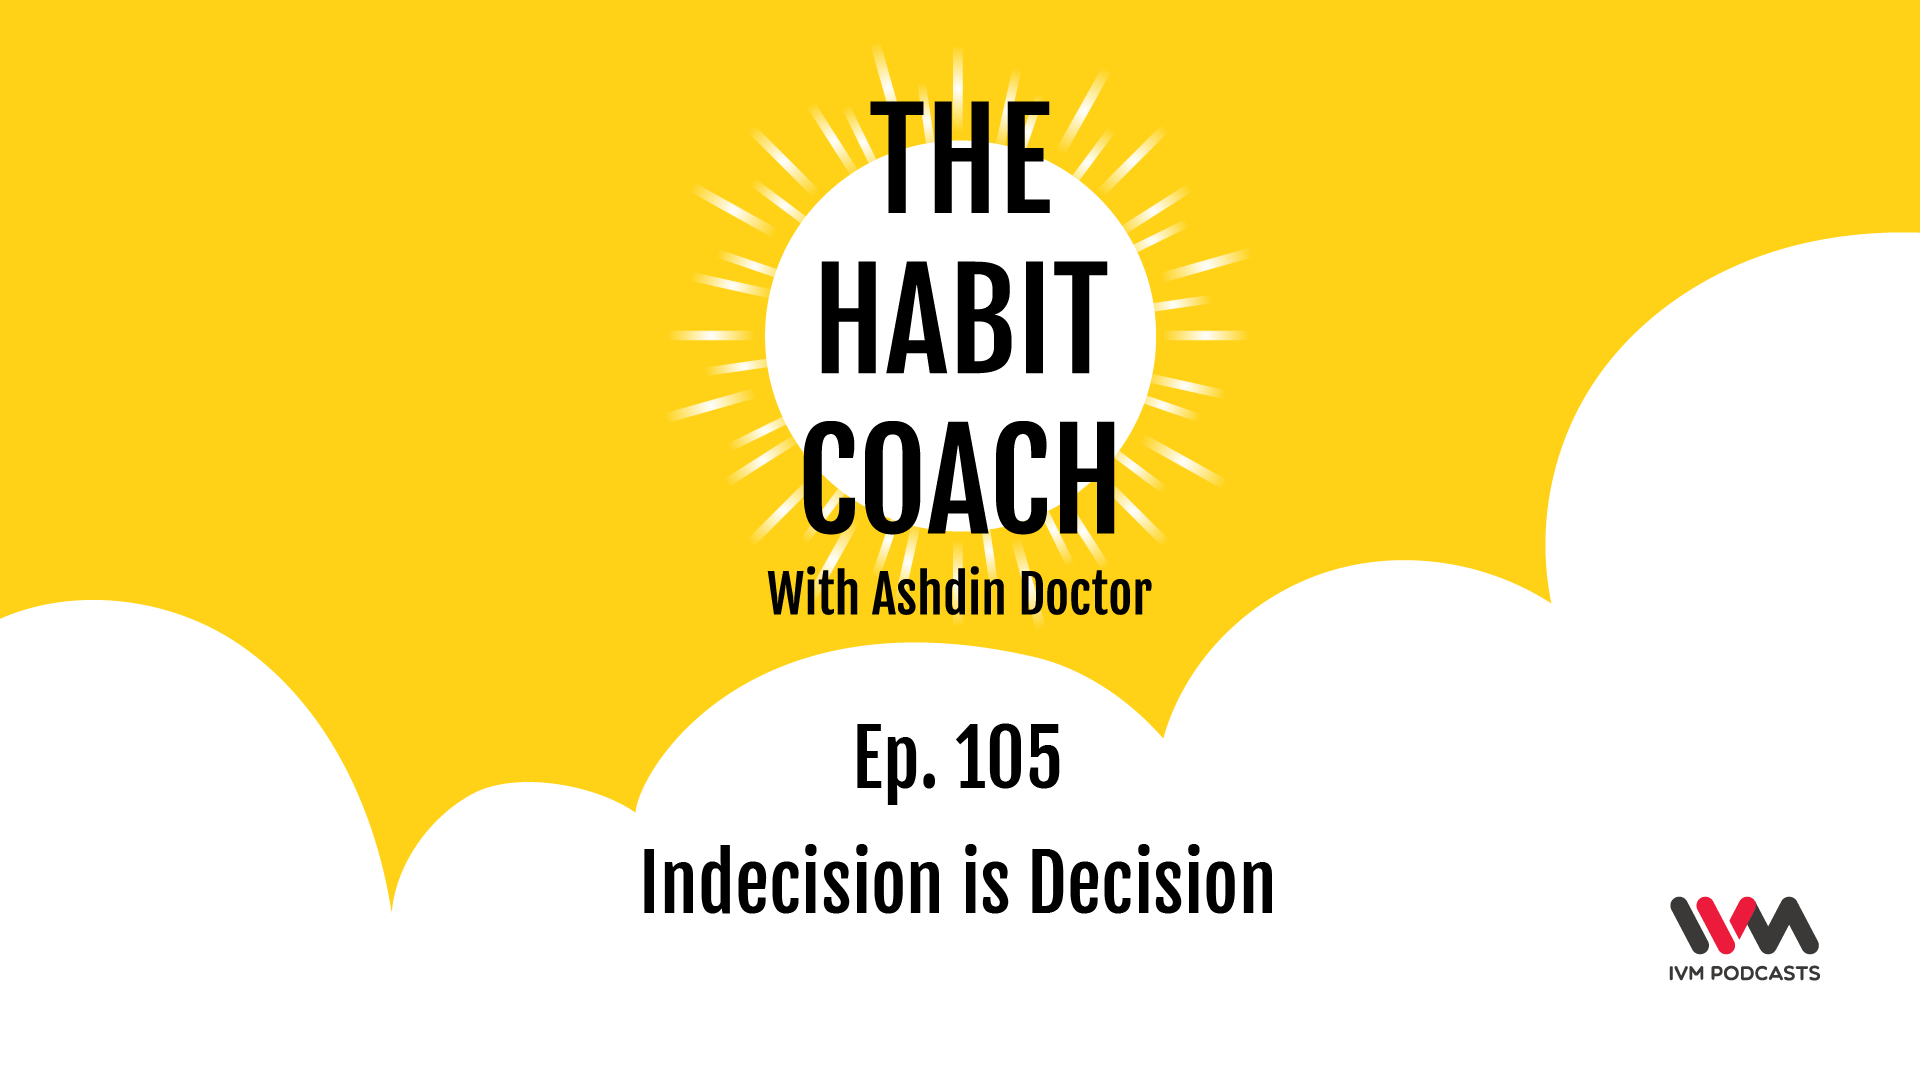 TheHabitCoachEpisode105.png